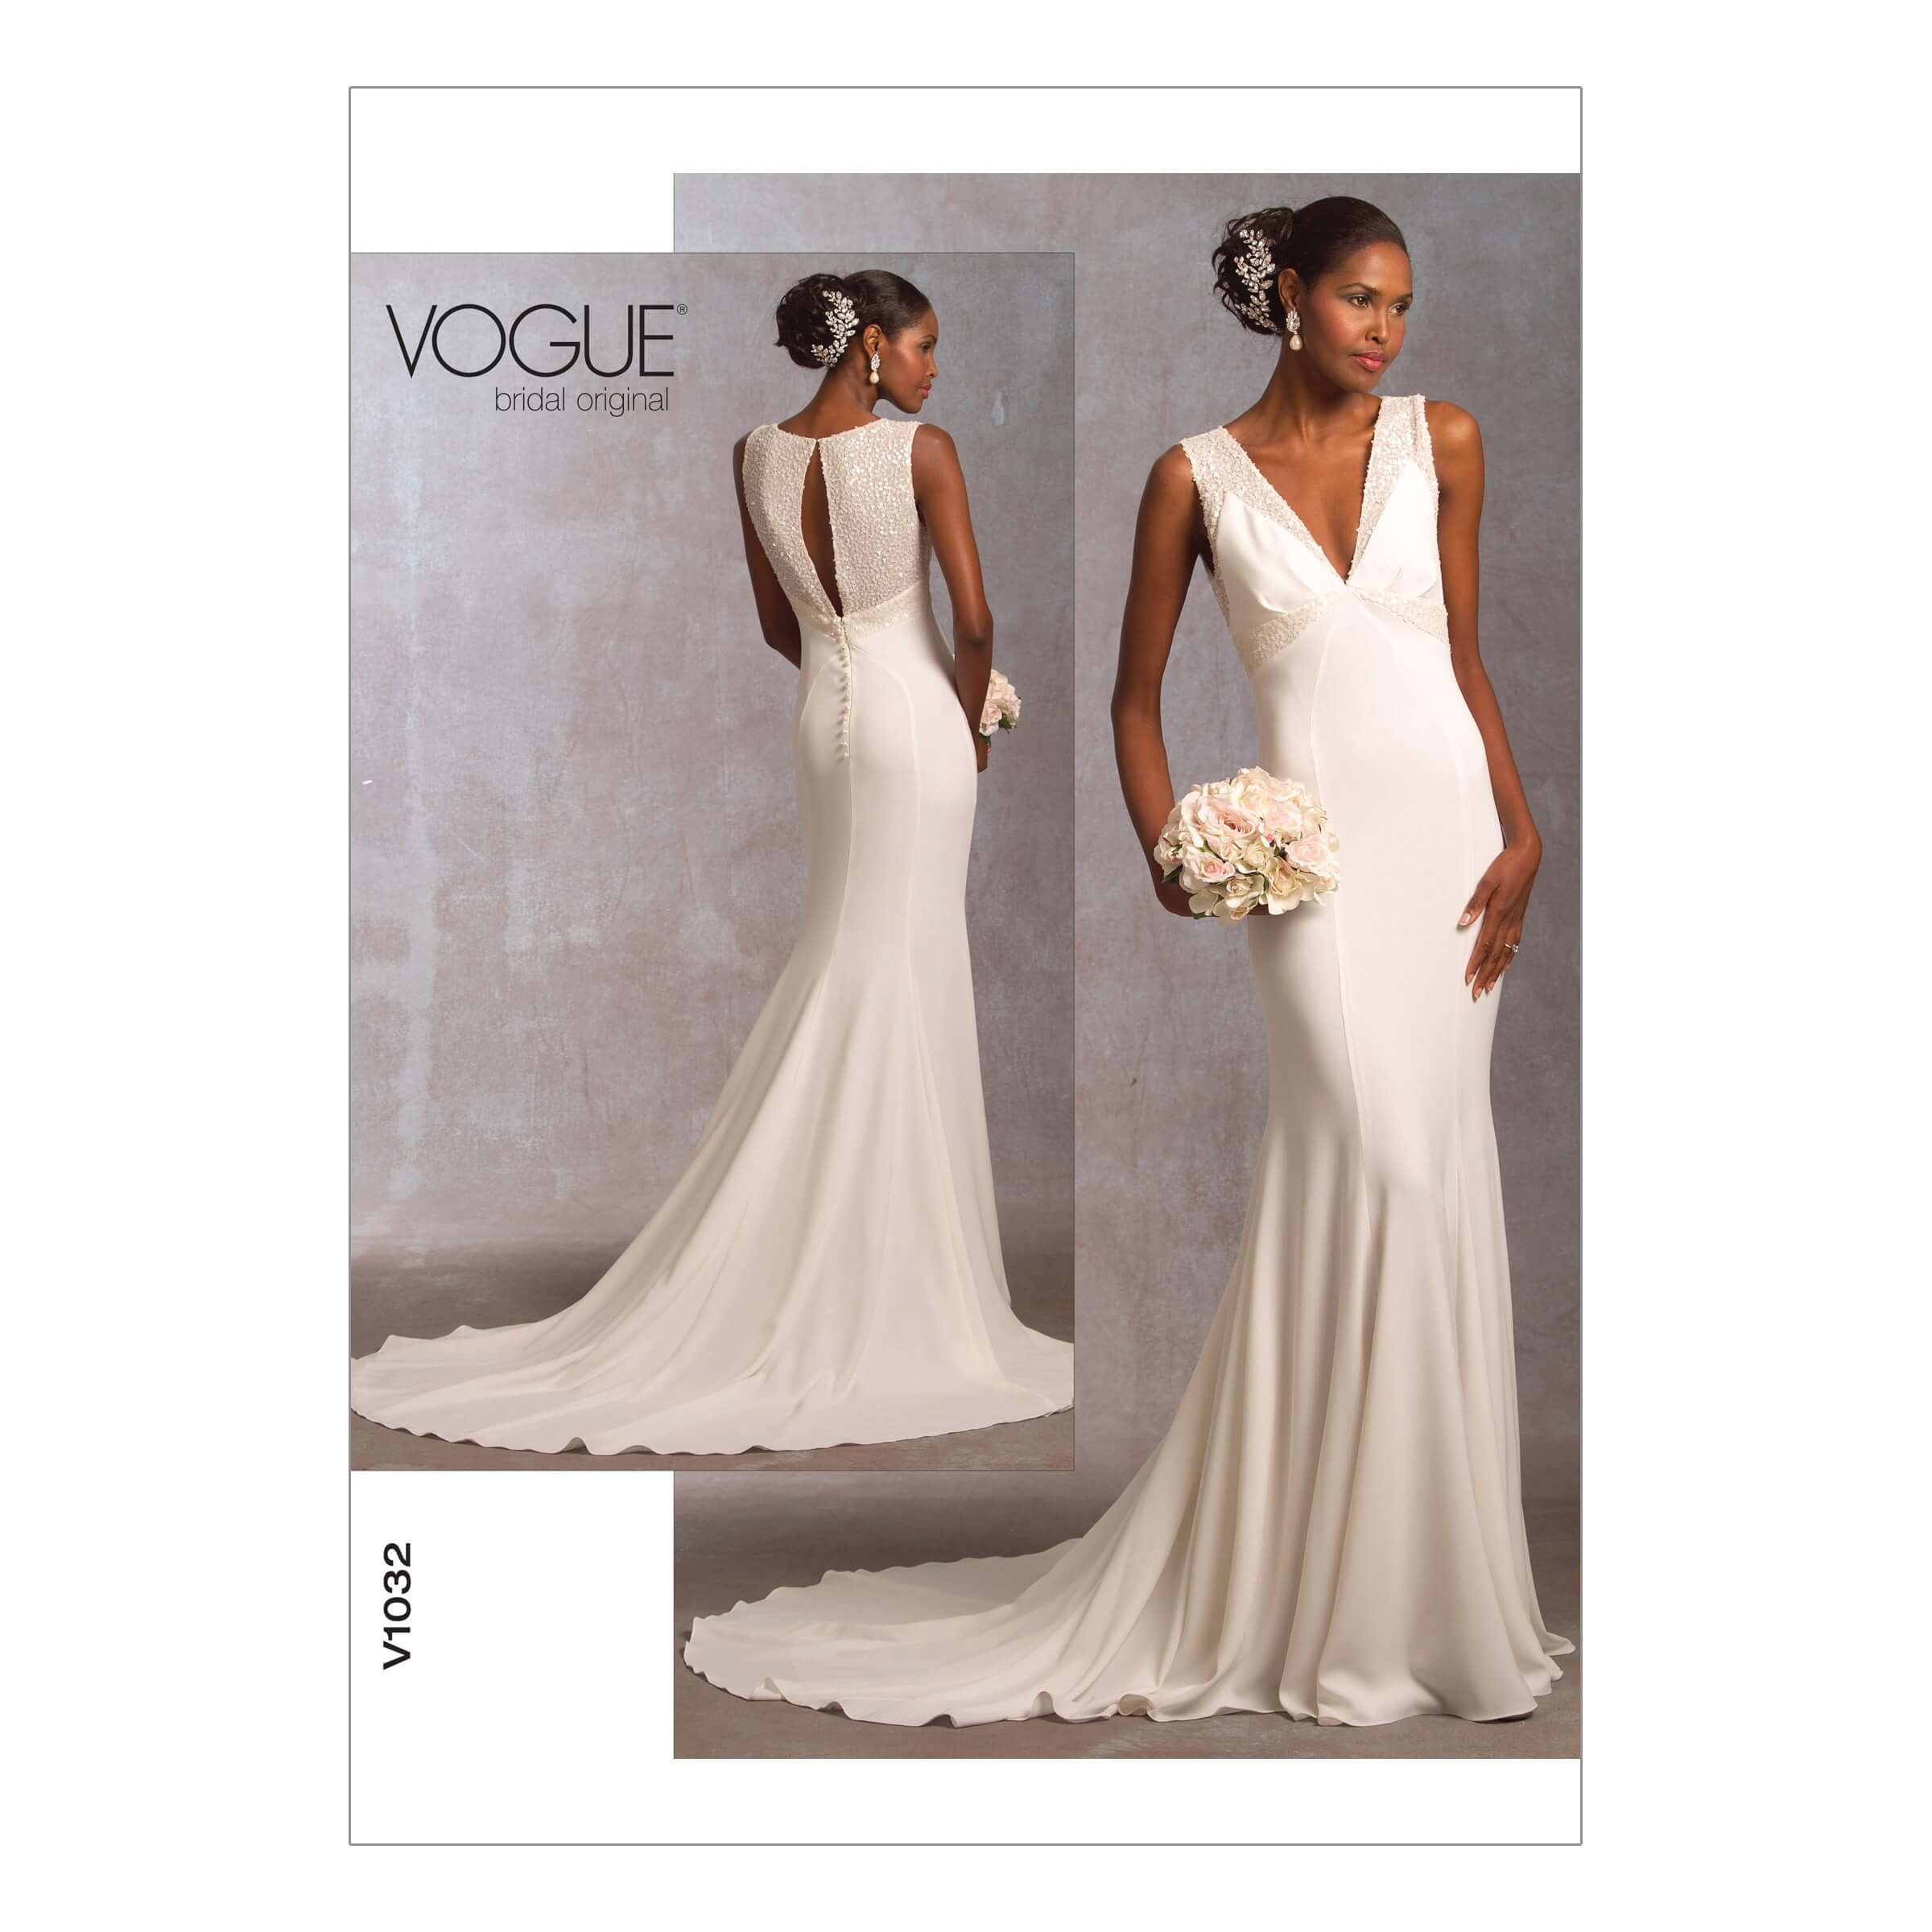 Vogue Sewing Pattern V1032 Women's Special Occasion Dress with Train